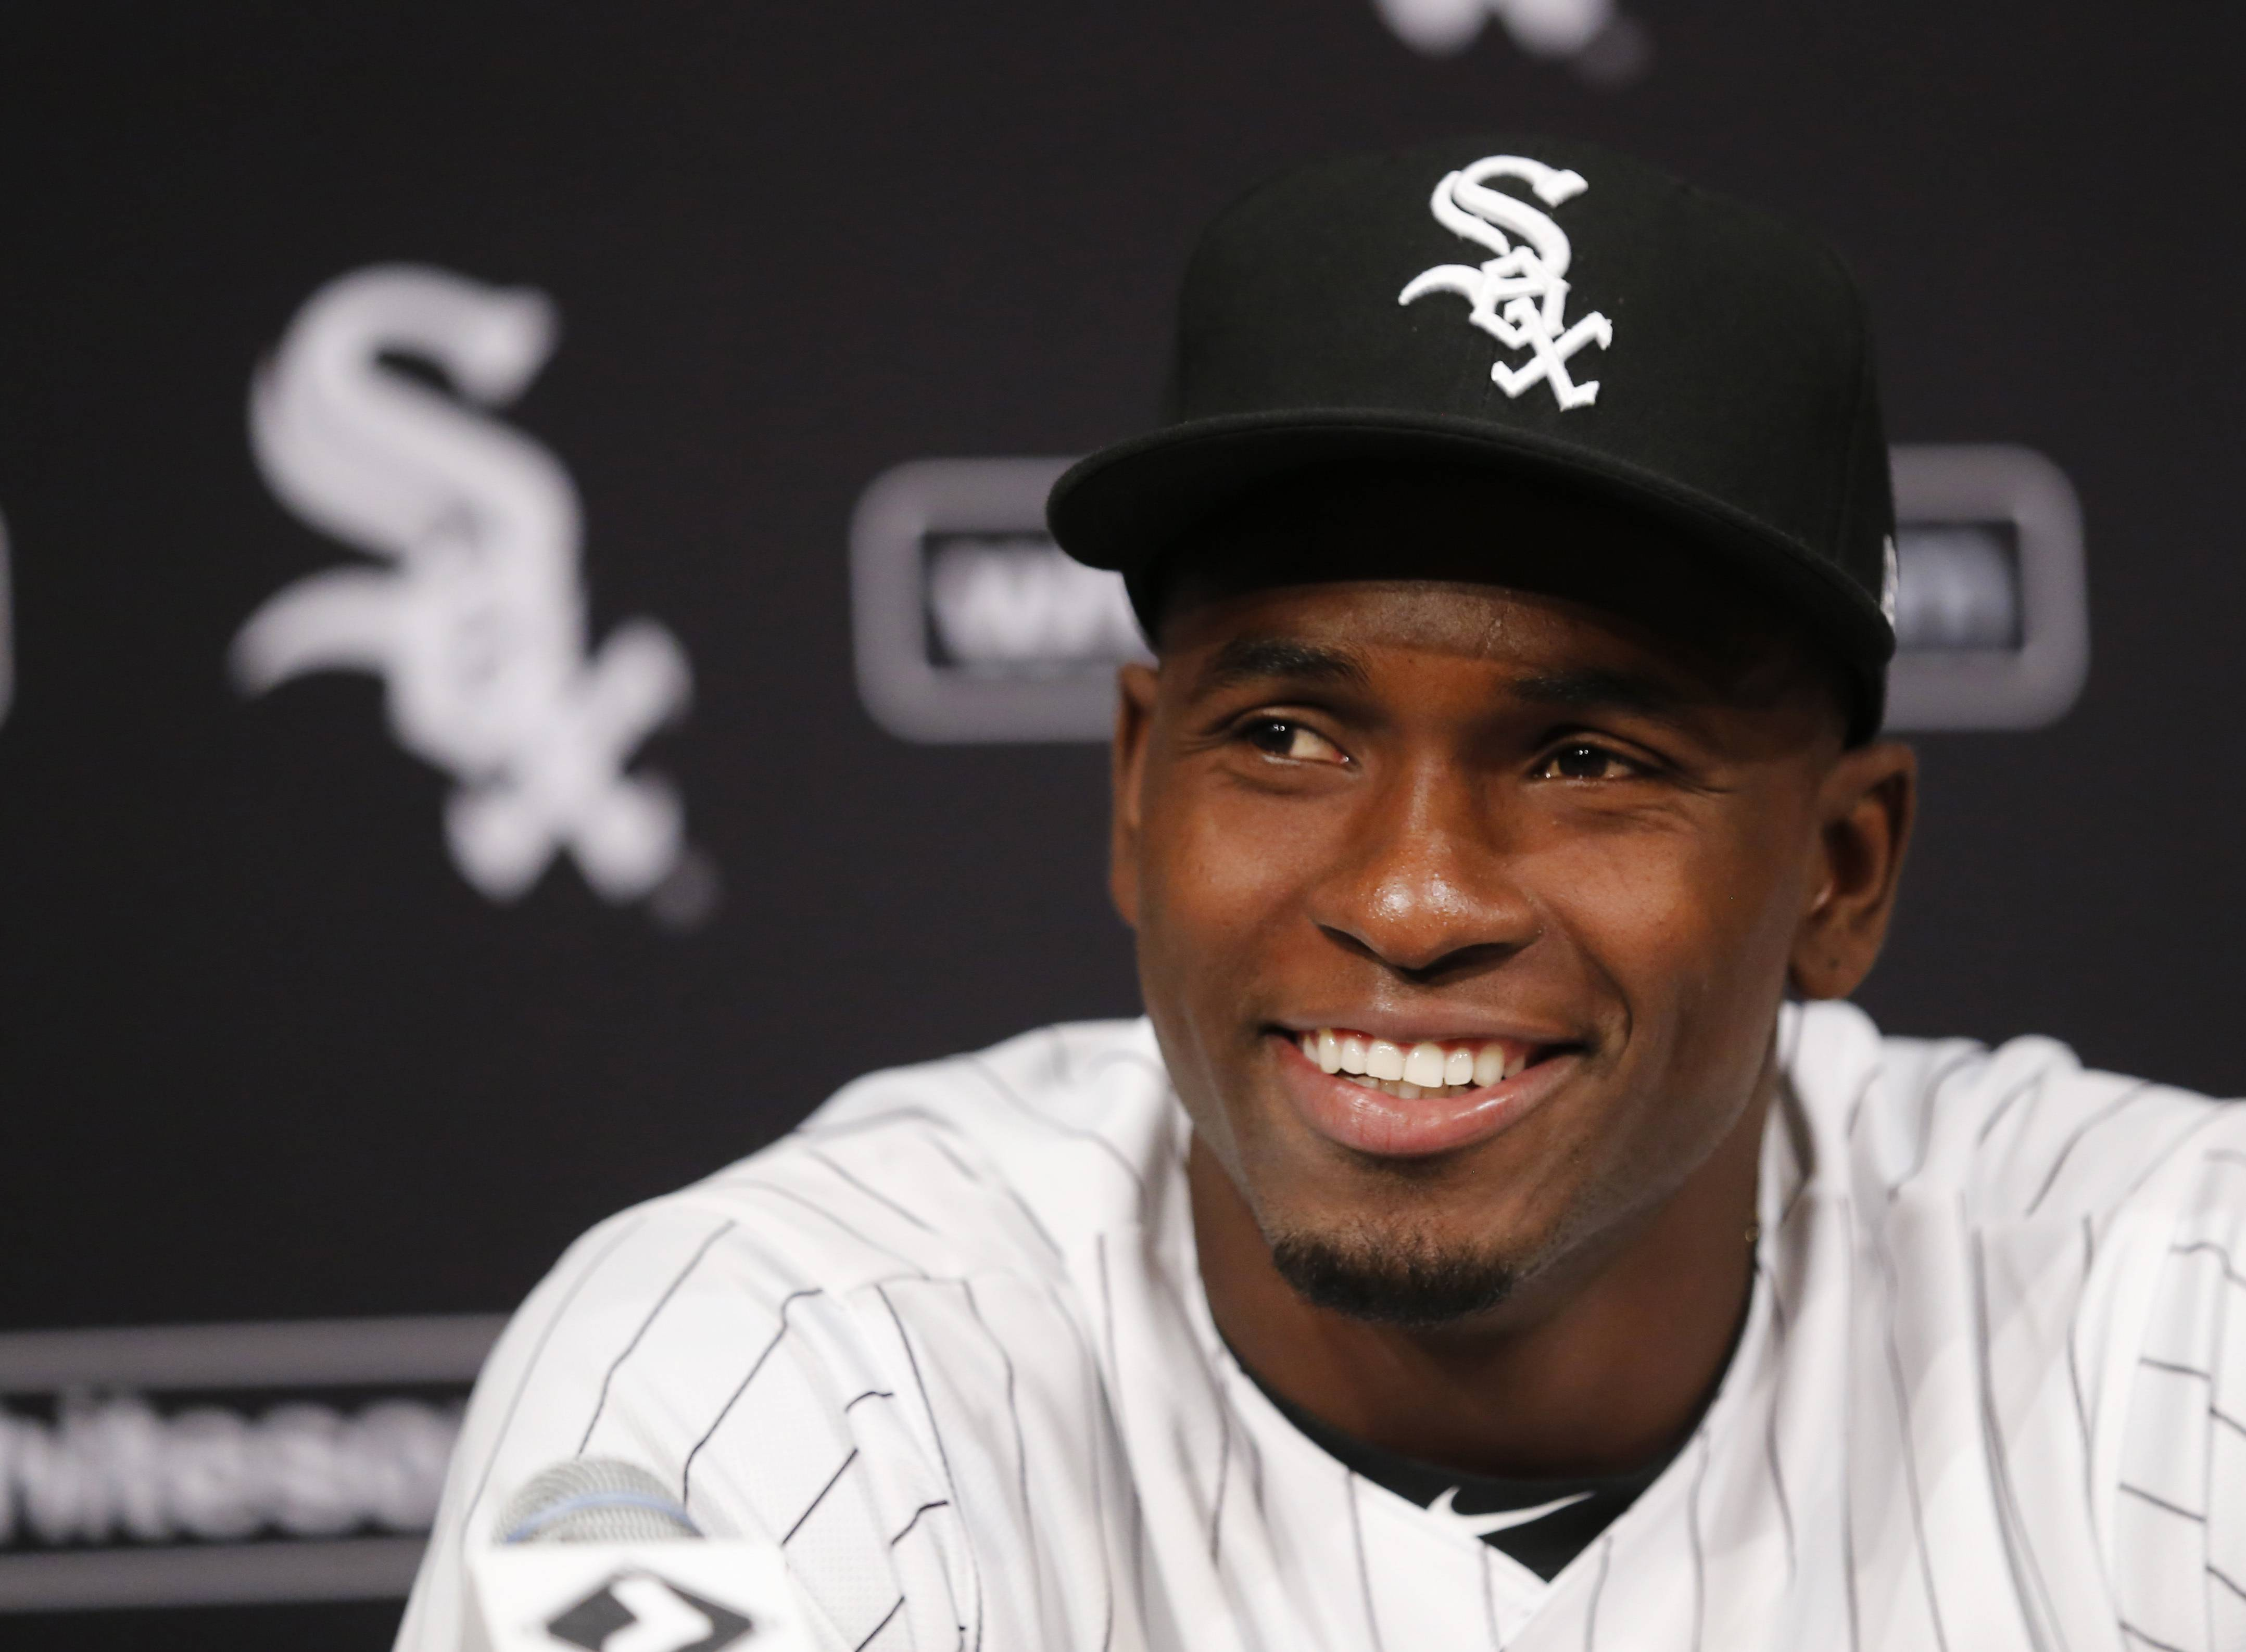 White Sox prospect Luis Robert, shown here after signing with the team last May, will miss the next 10 weeks of the season due to a sprained left thumb.